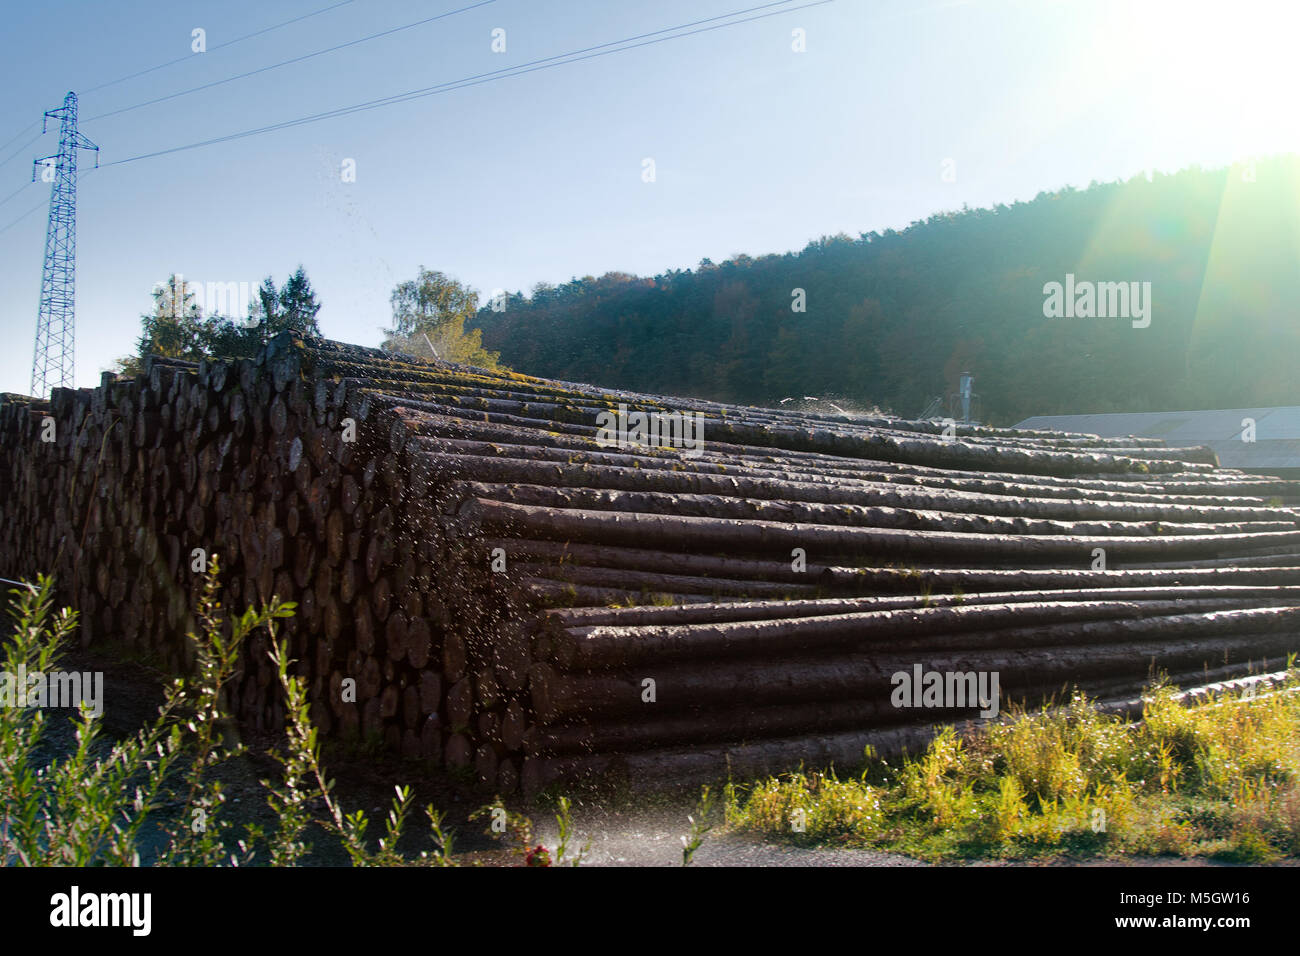 Water pile of logs (stack of logs, log deck). Sprinkler irrigation as way of preserving wood - creating microclimate - Stock Image